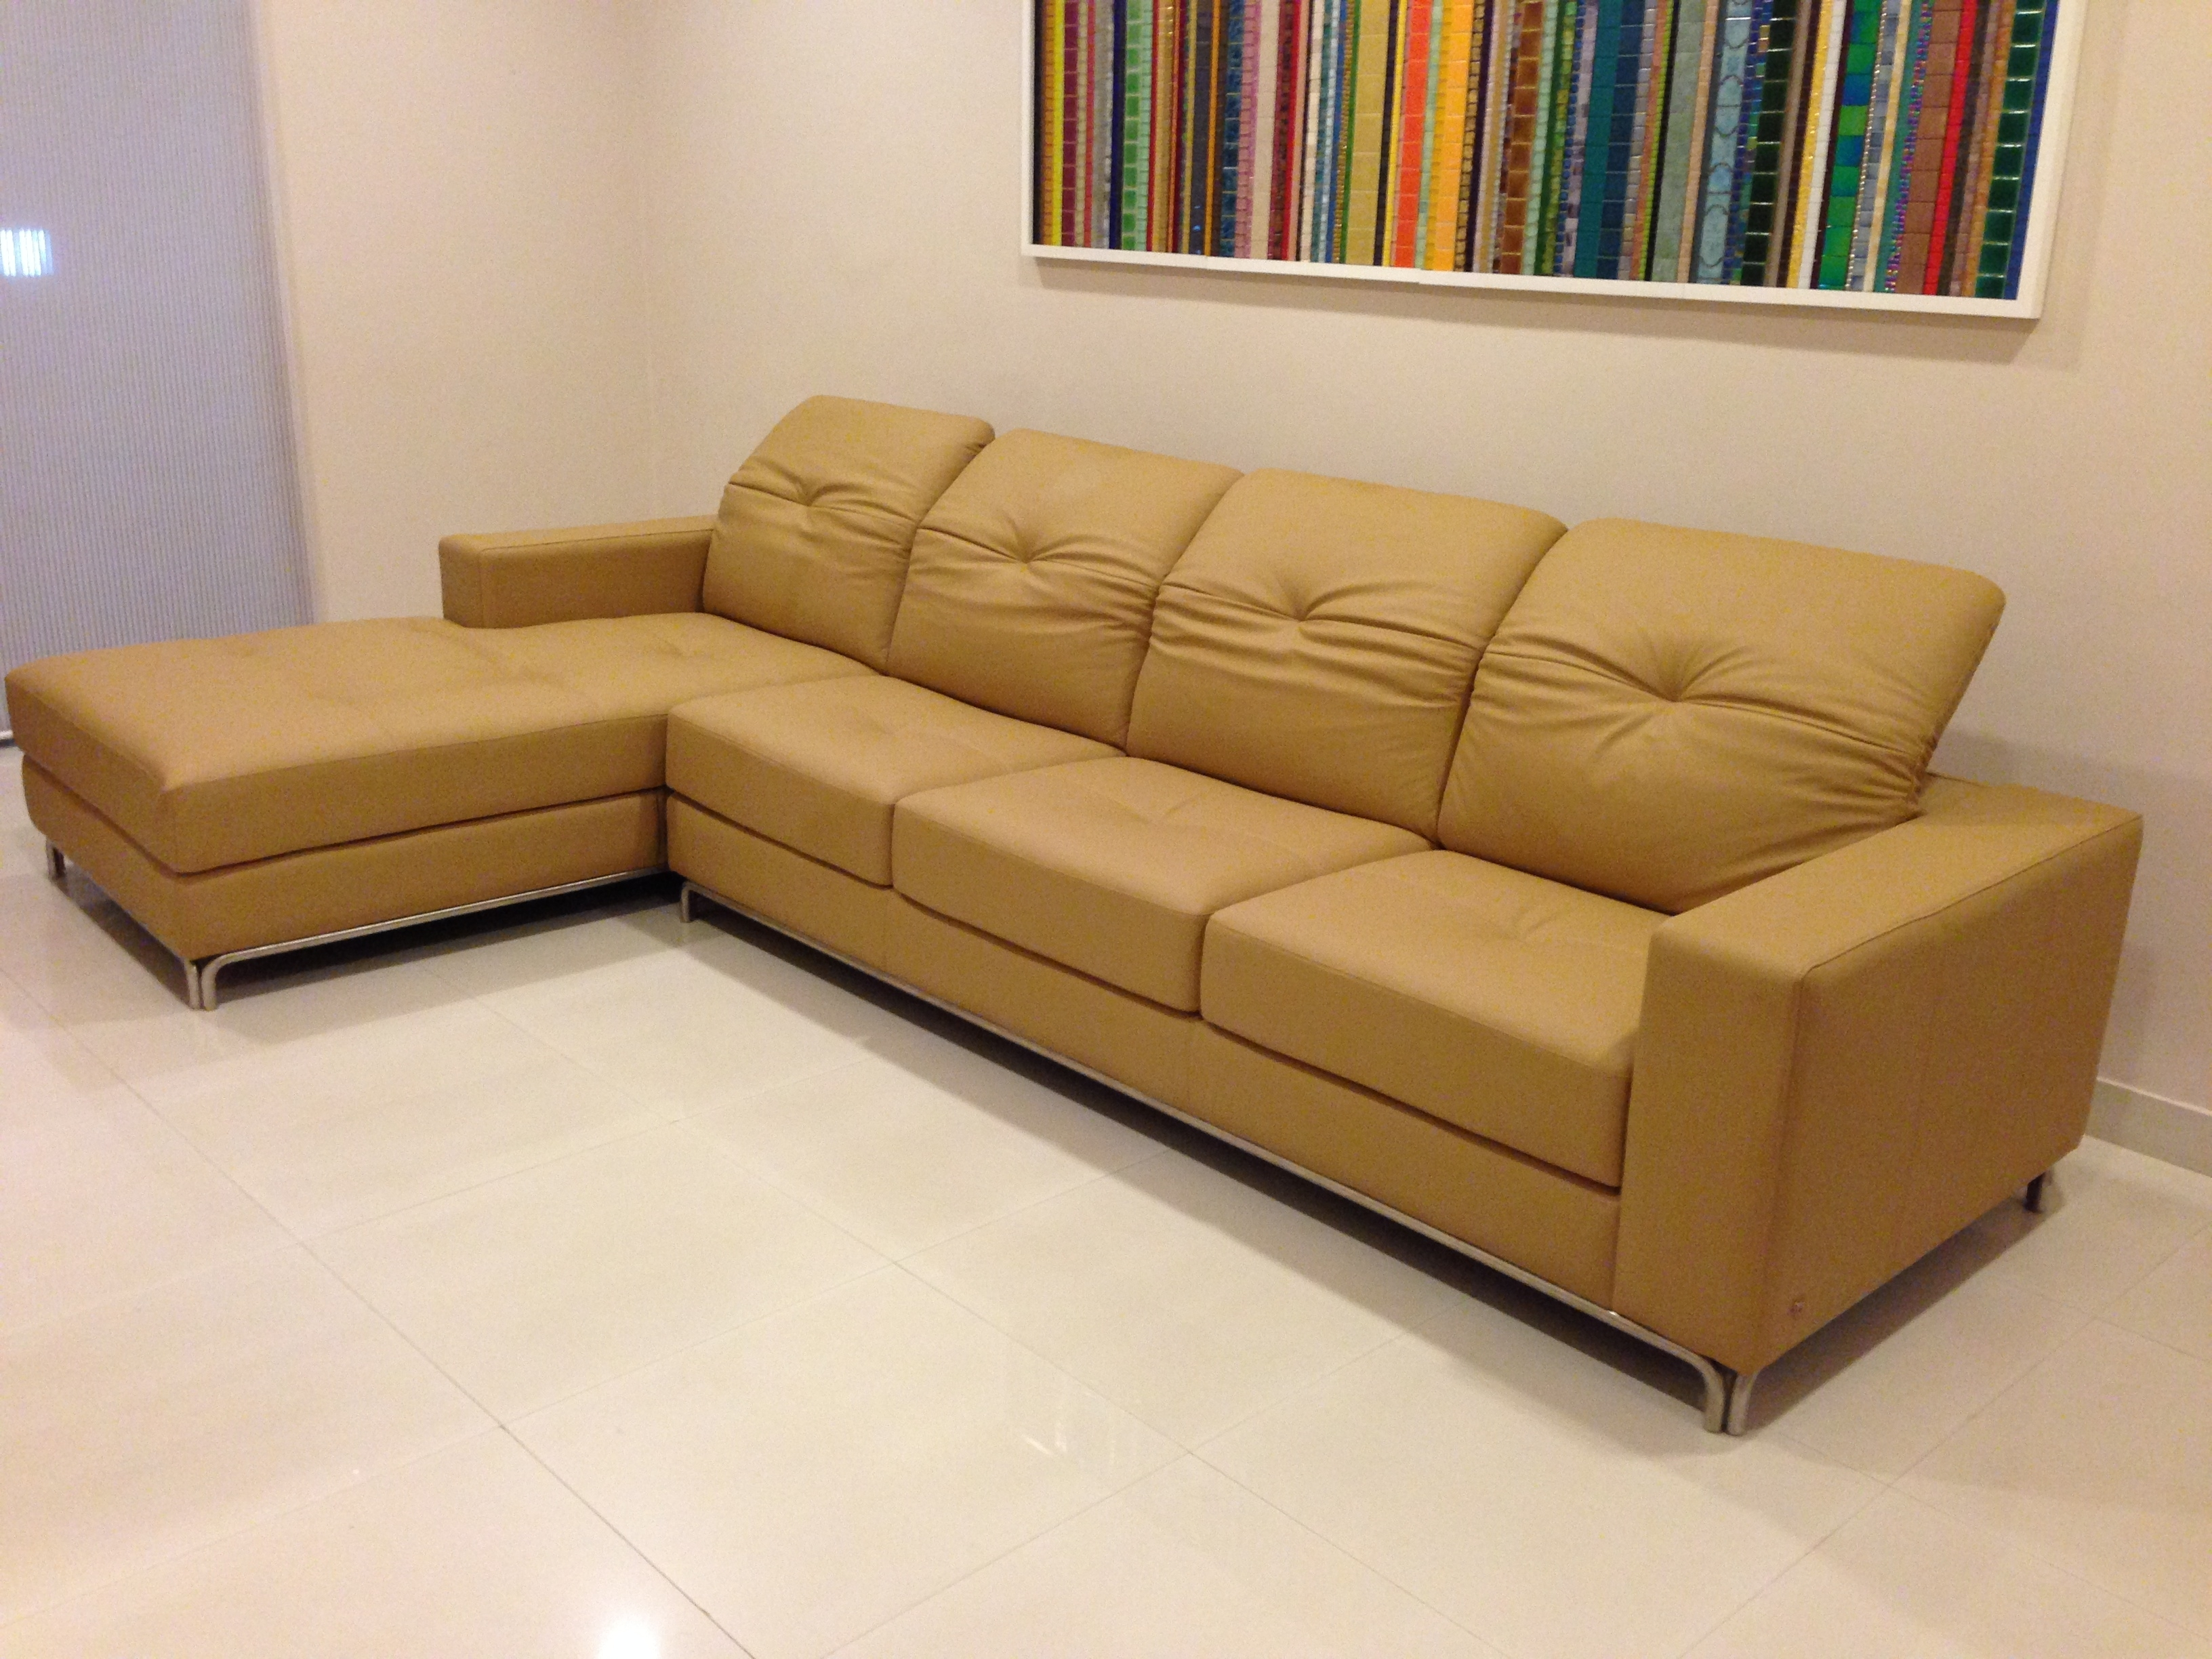 Karlsson Leather: Custom Leather Sofas, Recliners, Car Seat Covers Within Sectional Sofas At Bangalore (Photo 2 of 15)